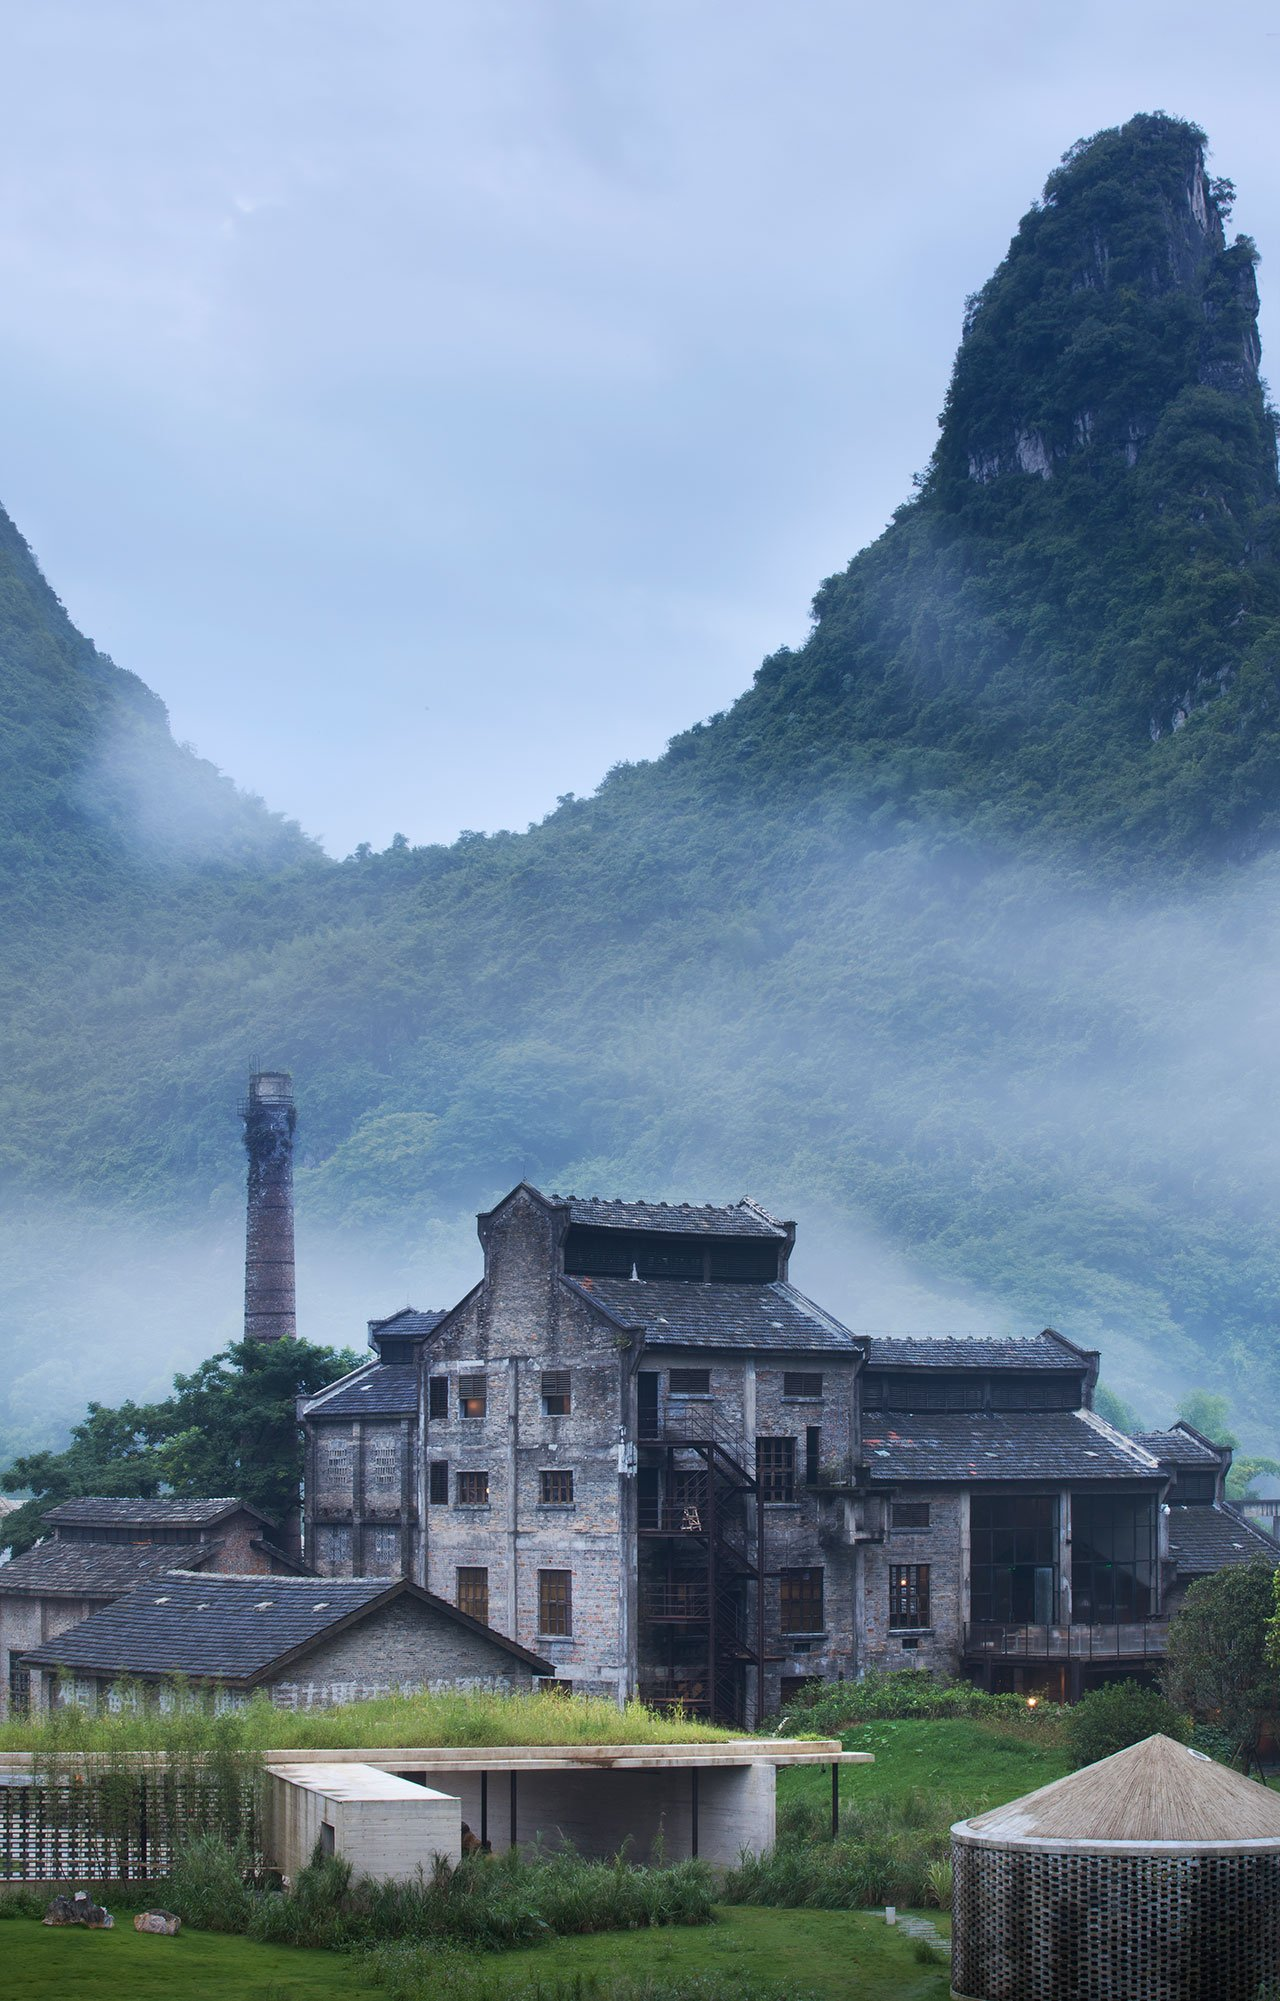 Photo © Alila Yangshuo.